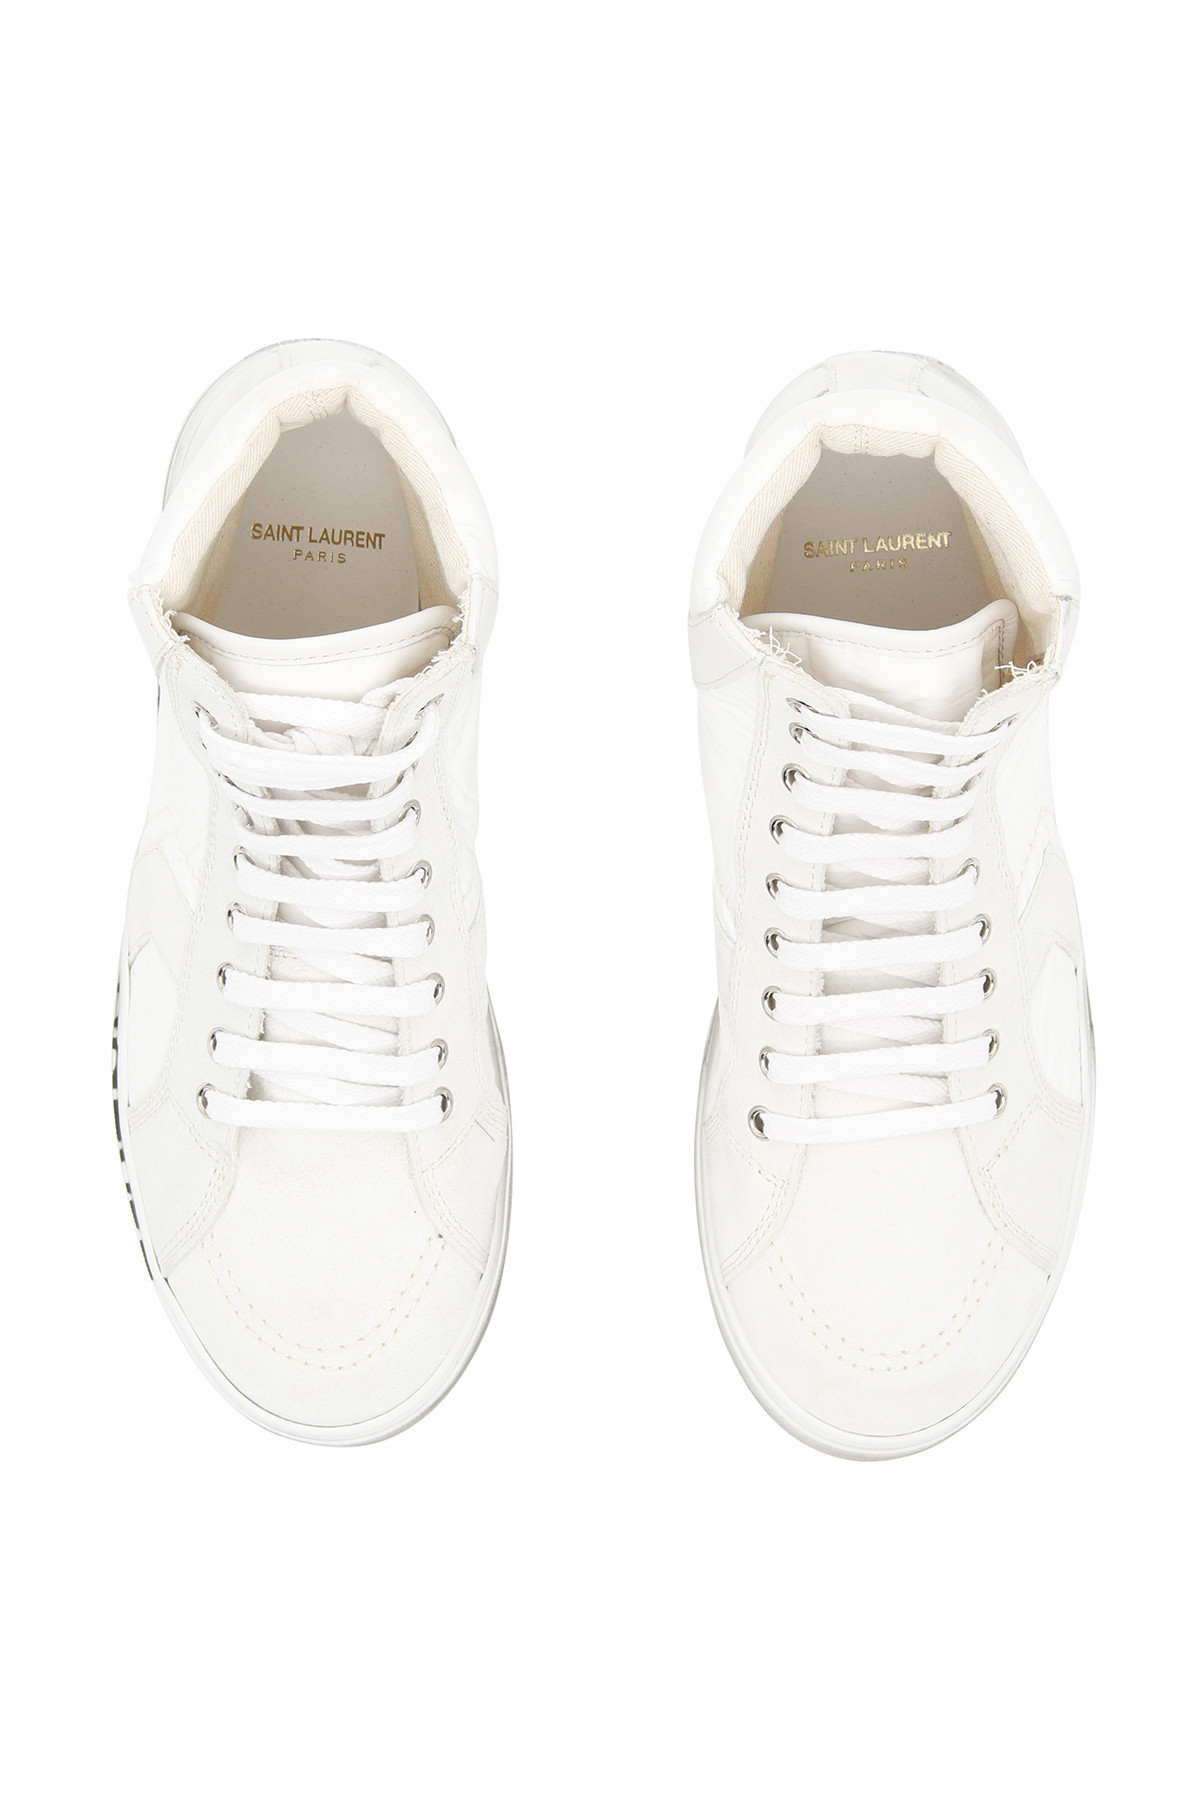 SAINT LAURENT Antibe Smoking Sneakers